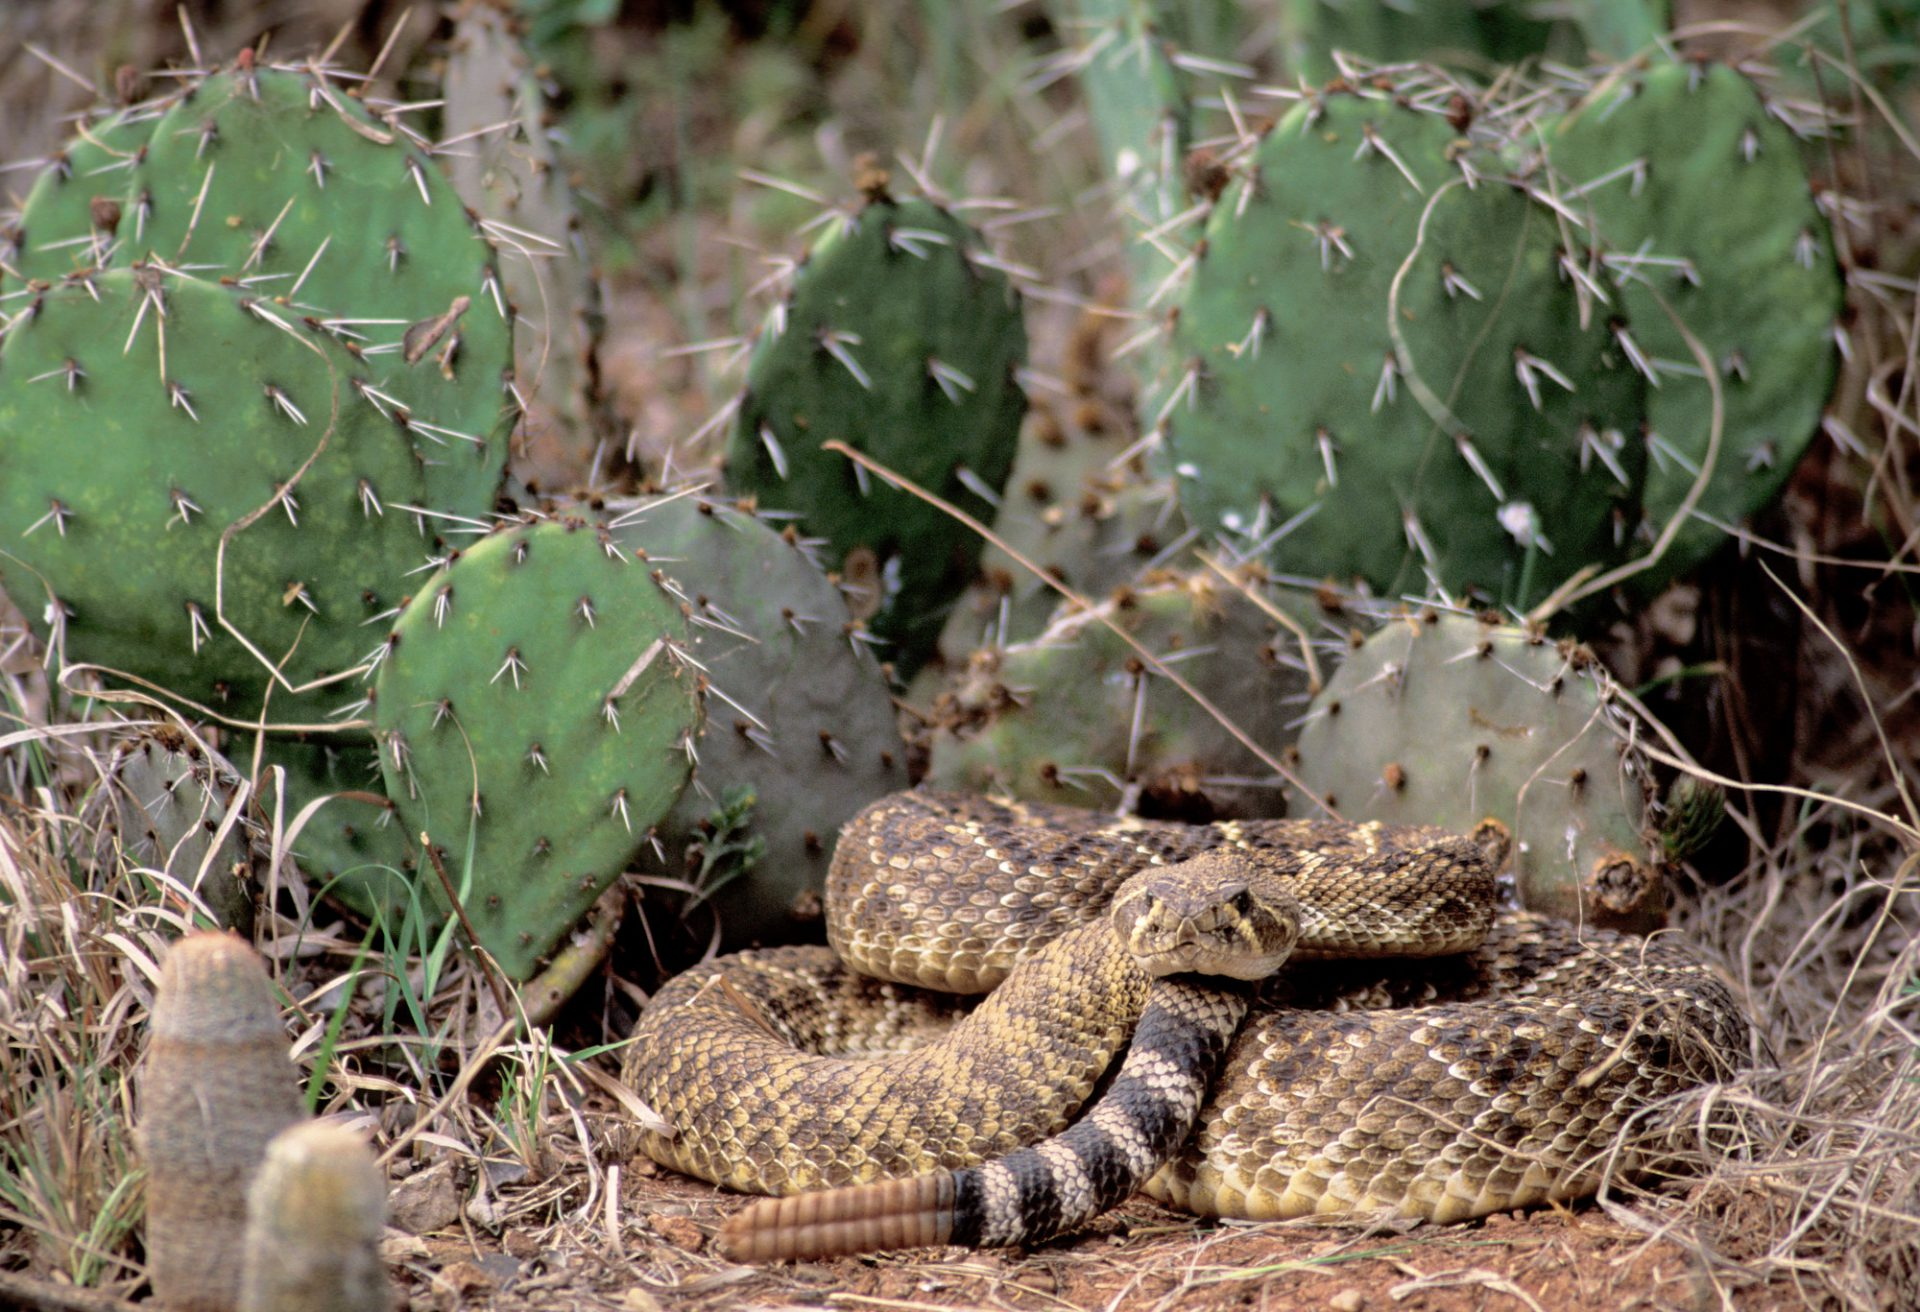 Photo: A rattlesnake sits coiled next to a prickly pear cactus.